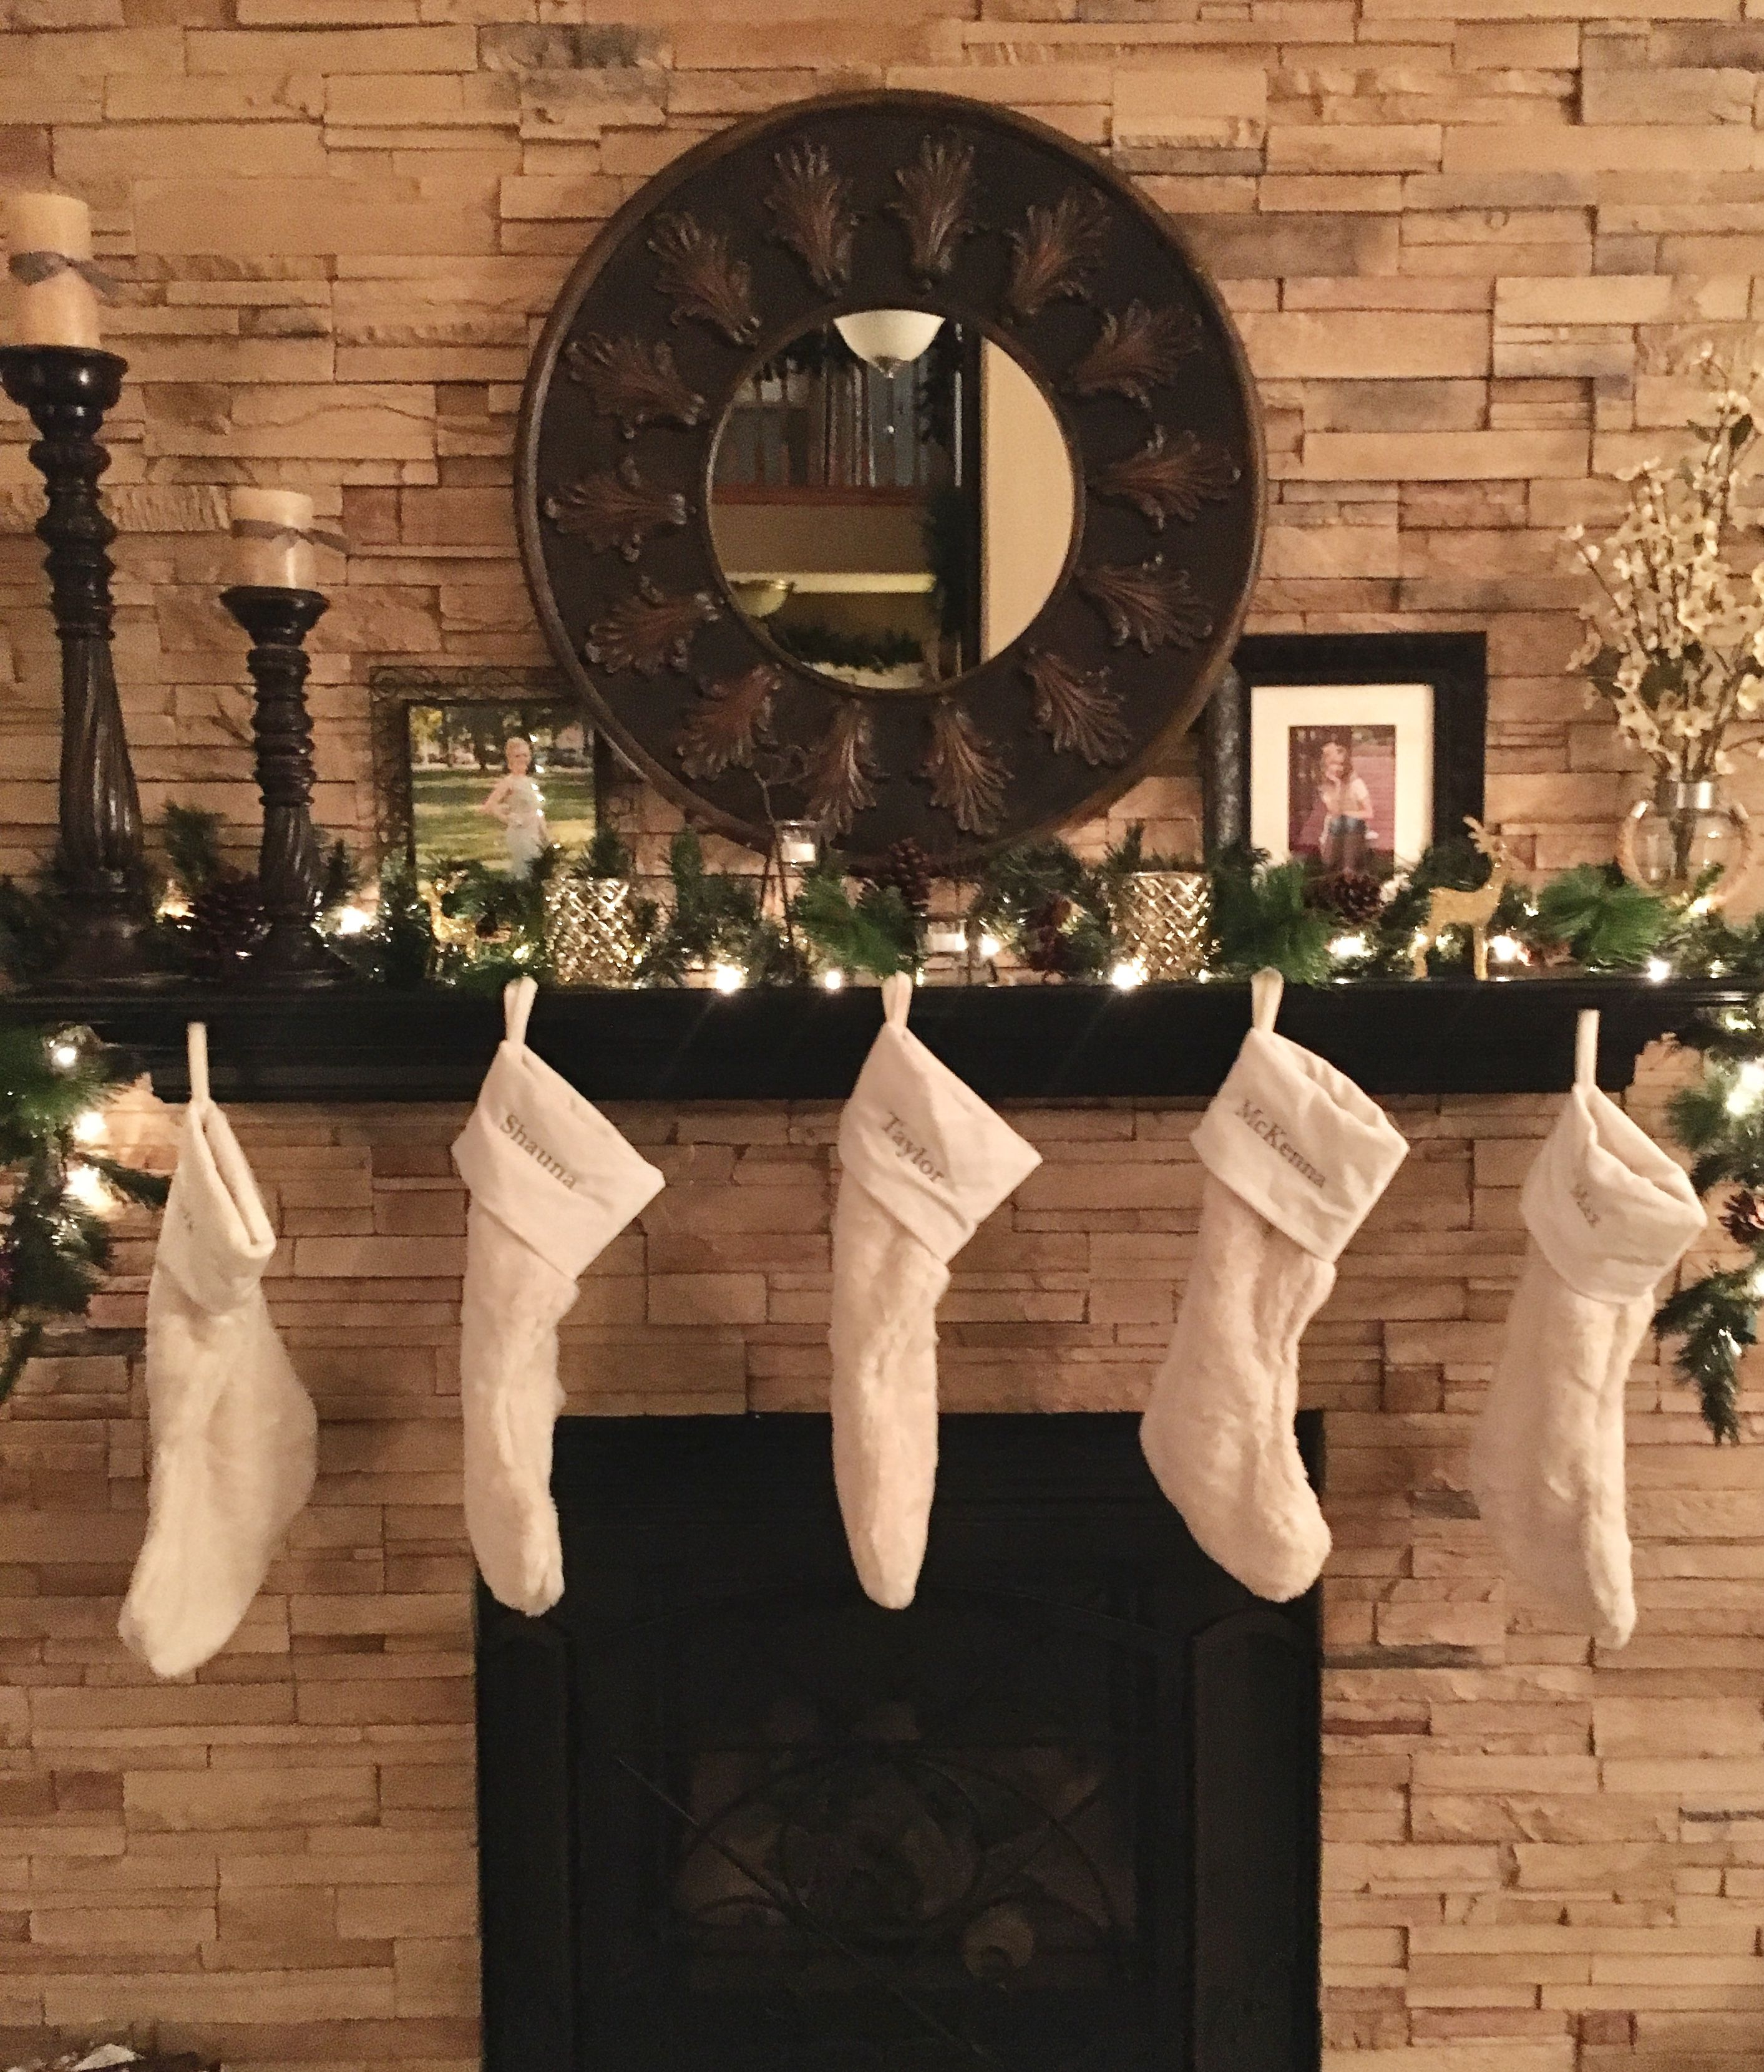 Christmas Stocking Decorations For Fireplace With Garland ...